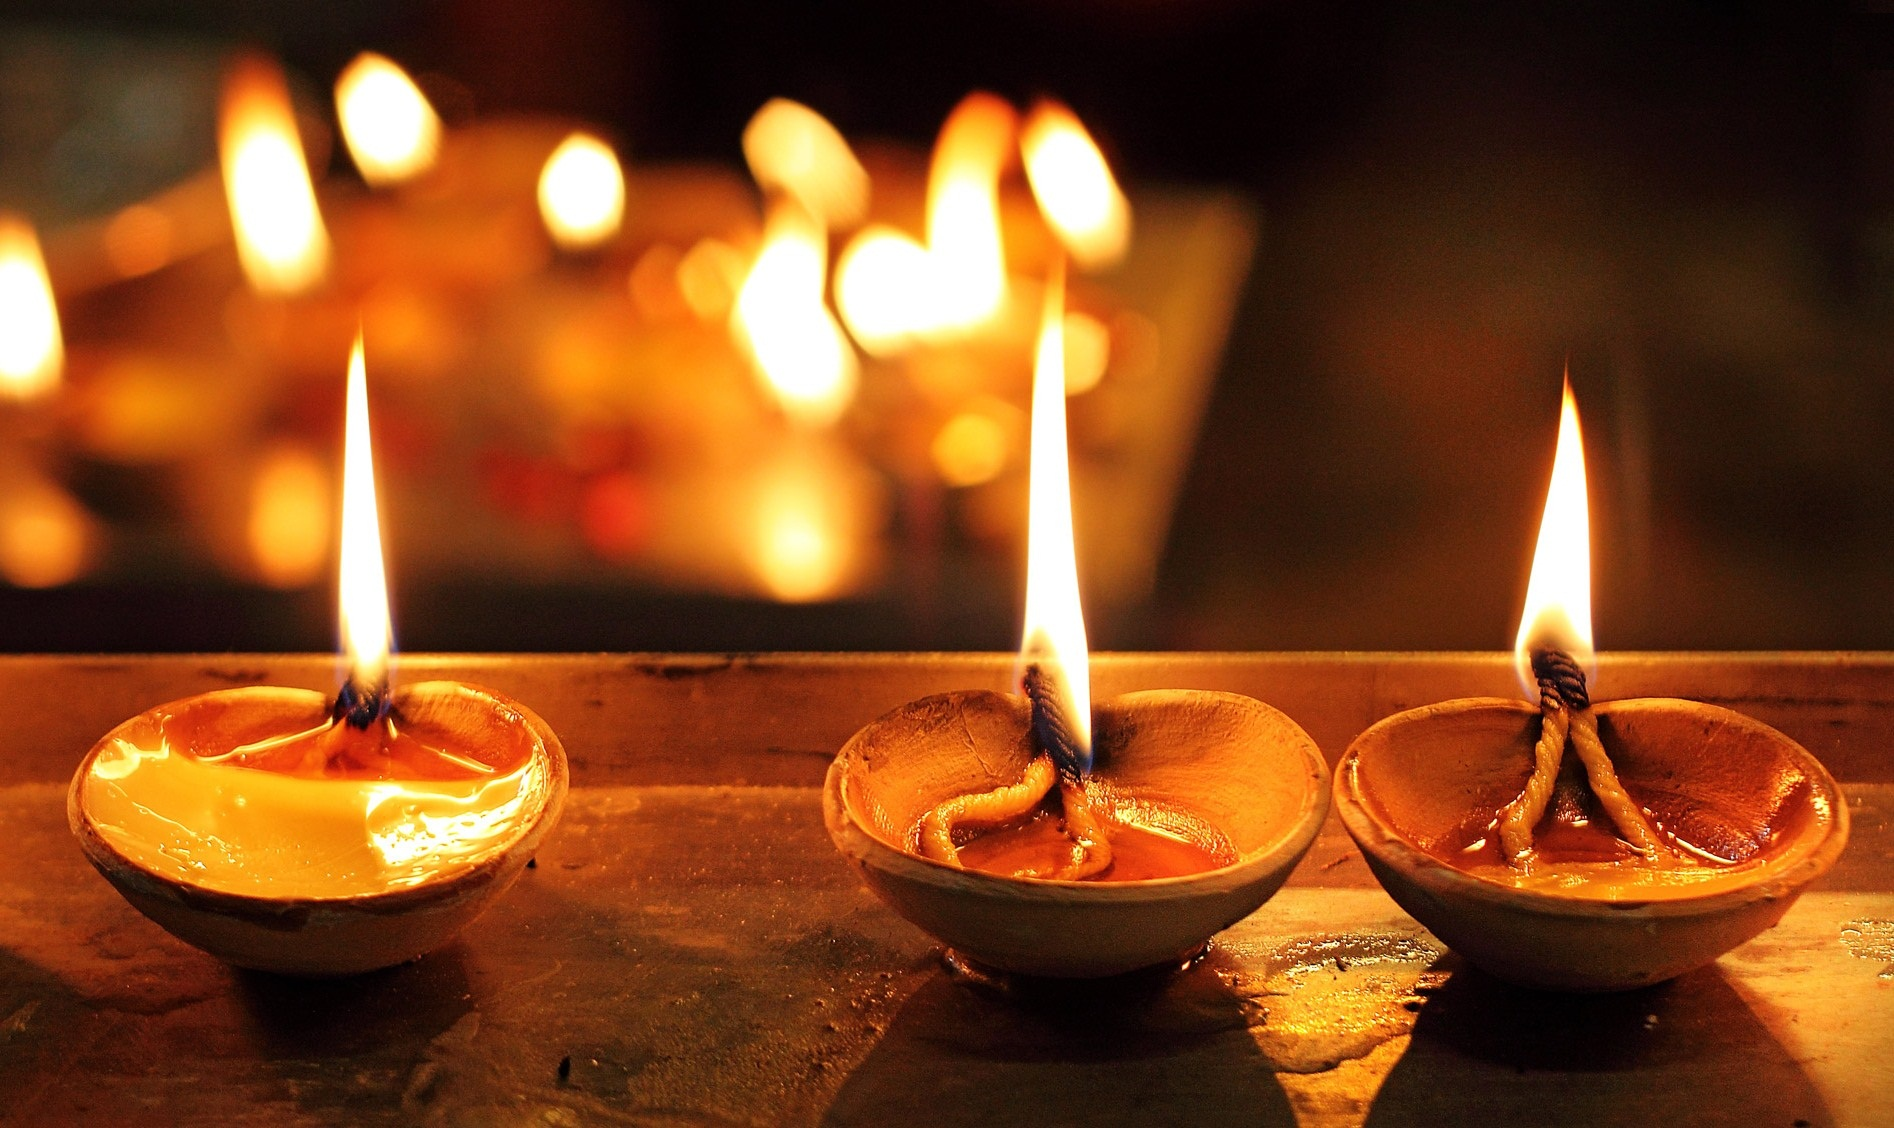 how to decorate your home on diwali according to vastu dynamite news how to decorate your home on diwali according to vastu